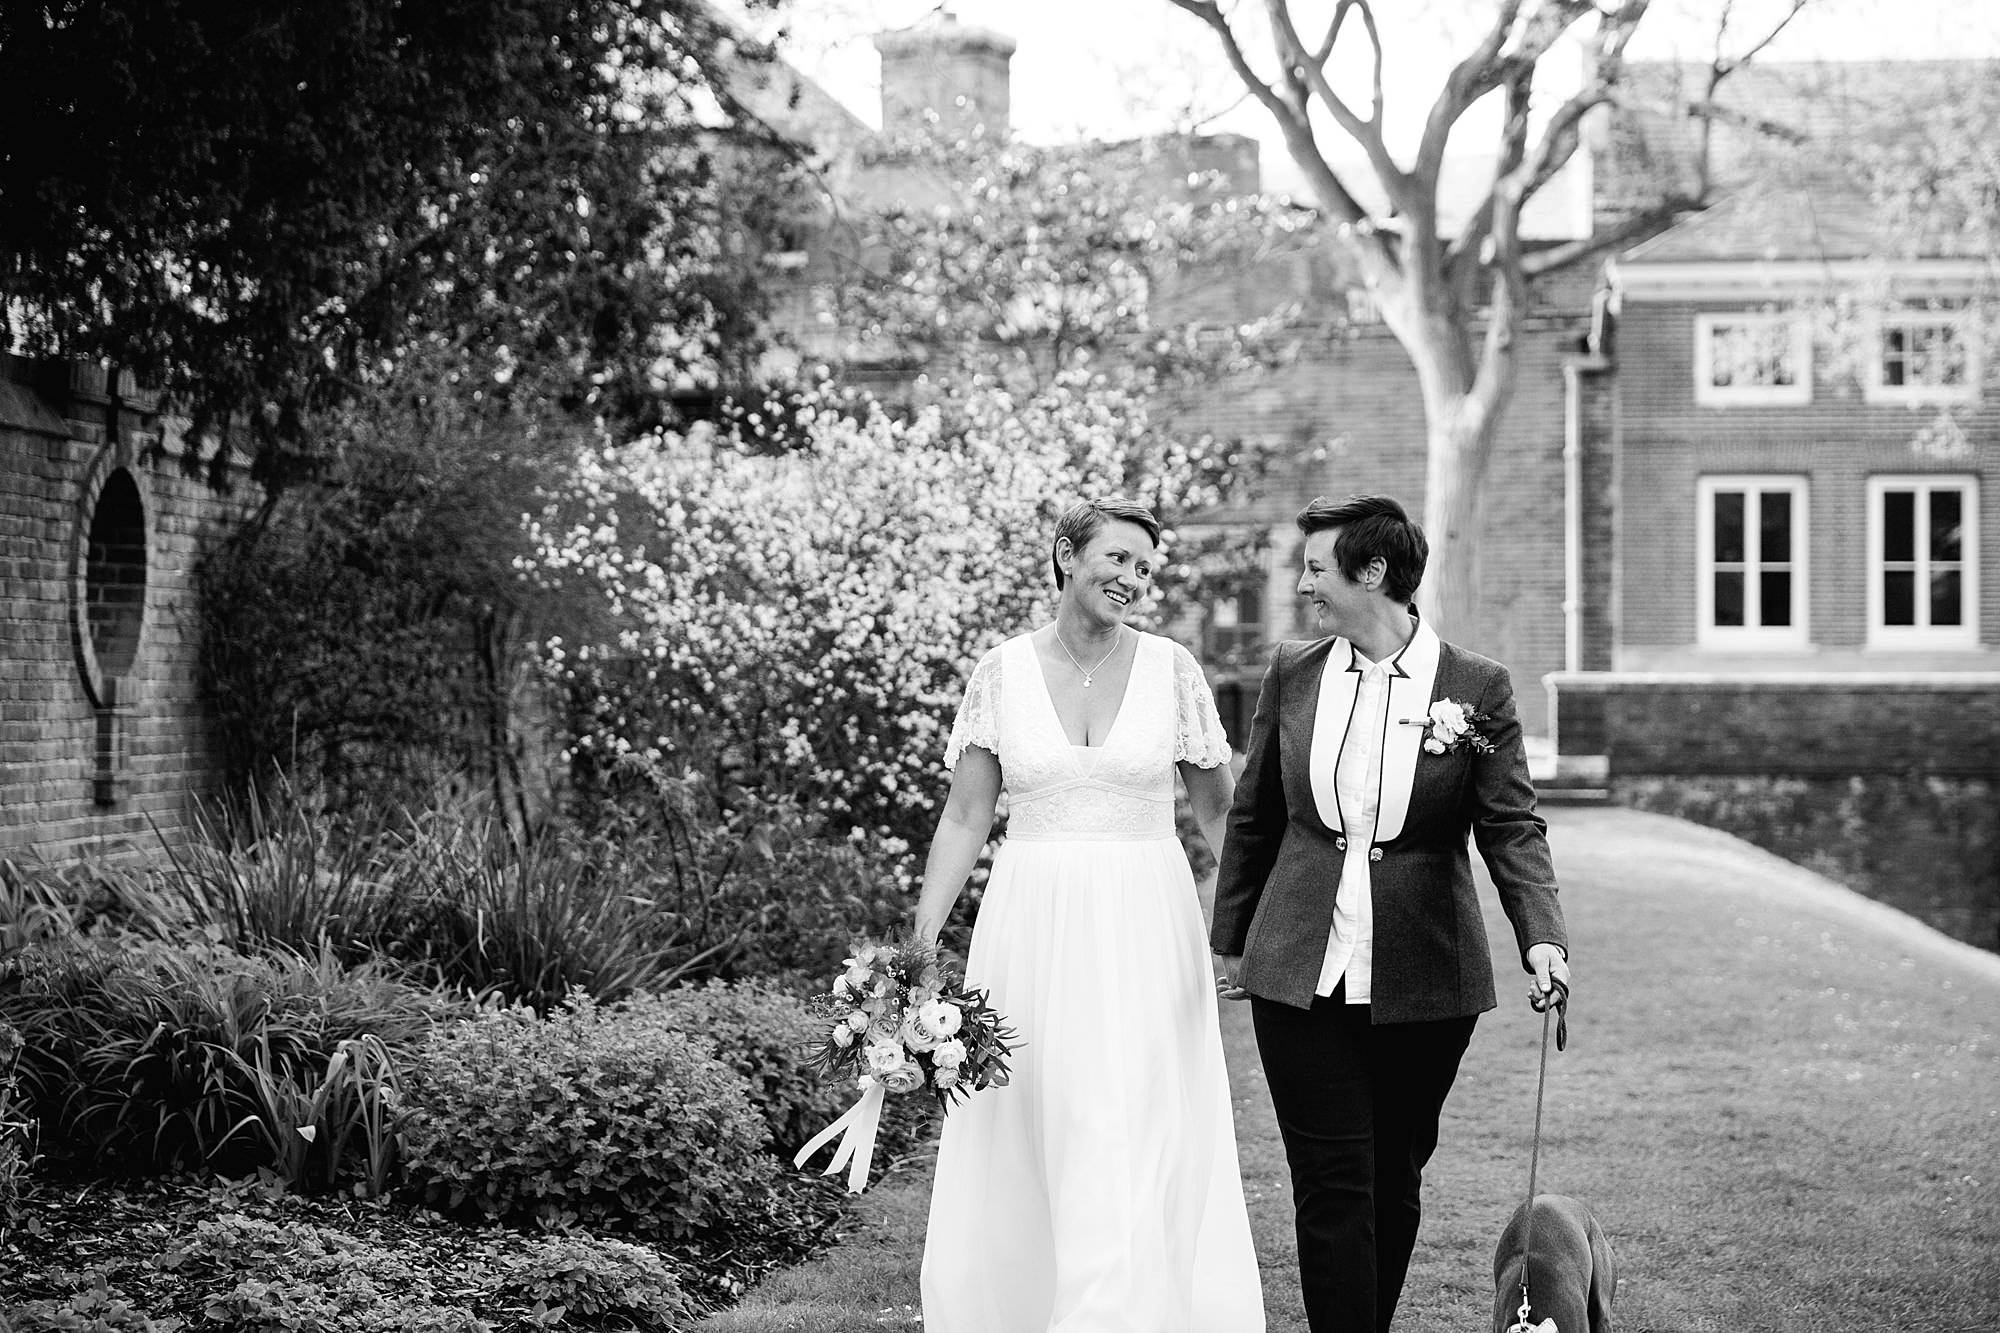 Twickenham wedding photography brides laugh together as they walk through york house gardens